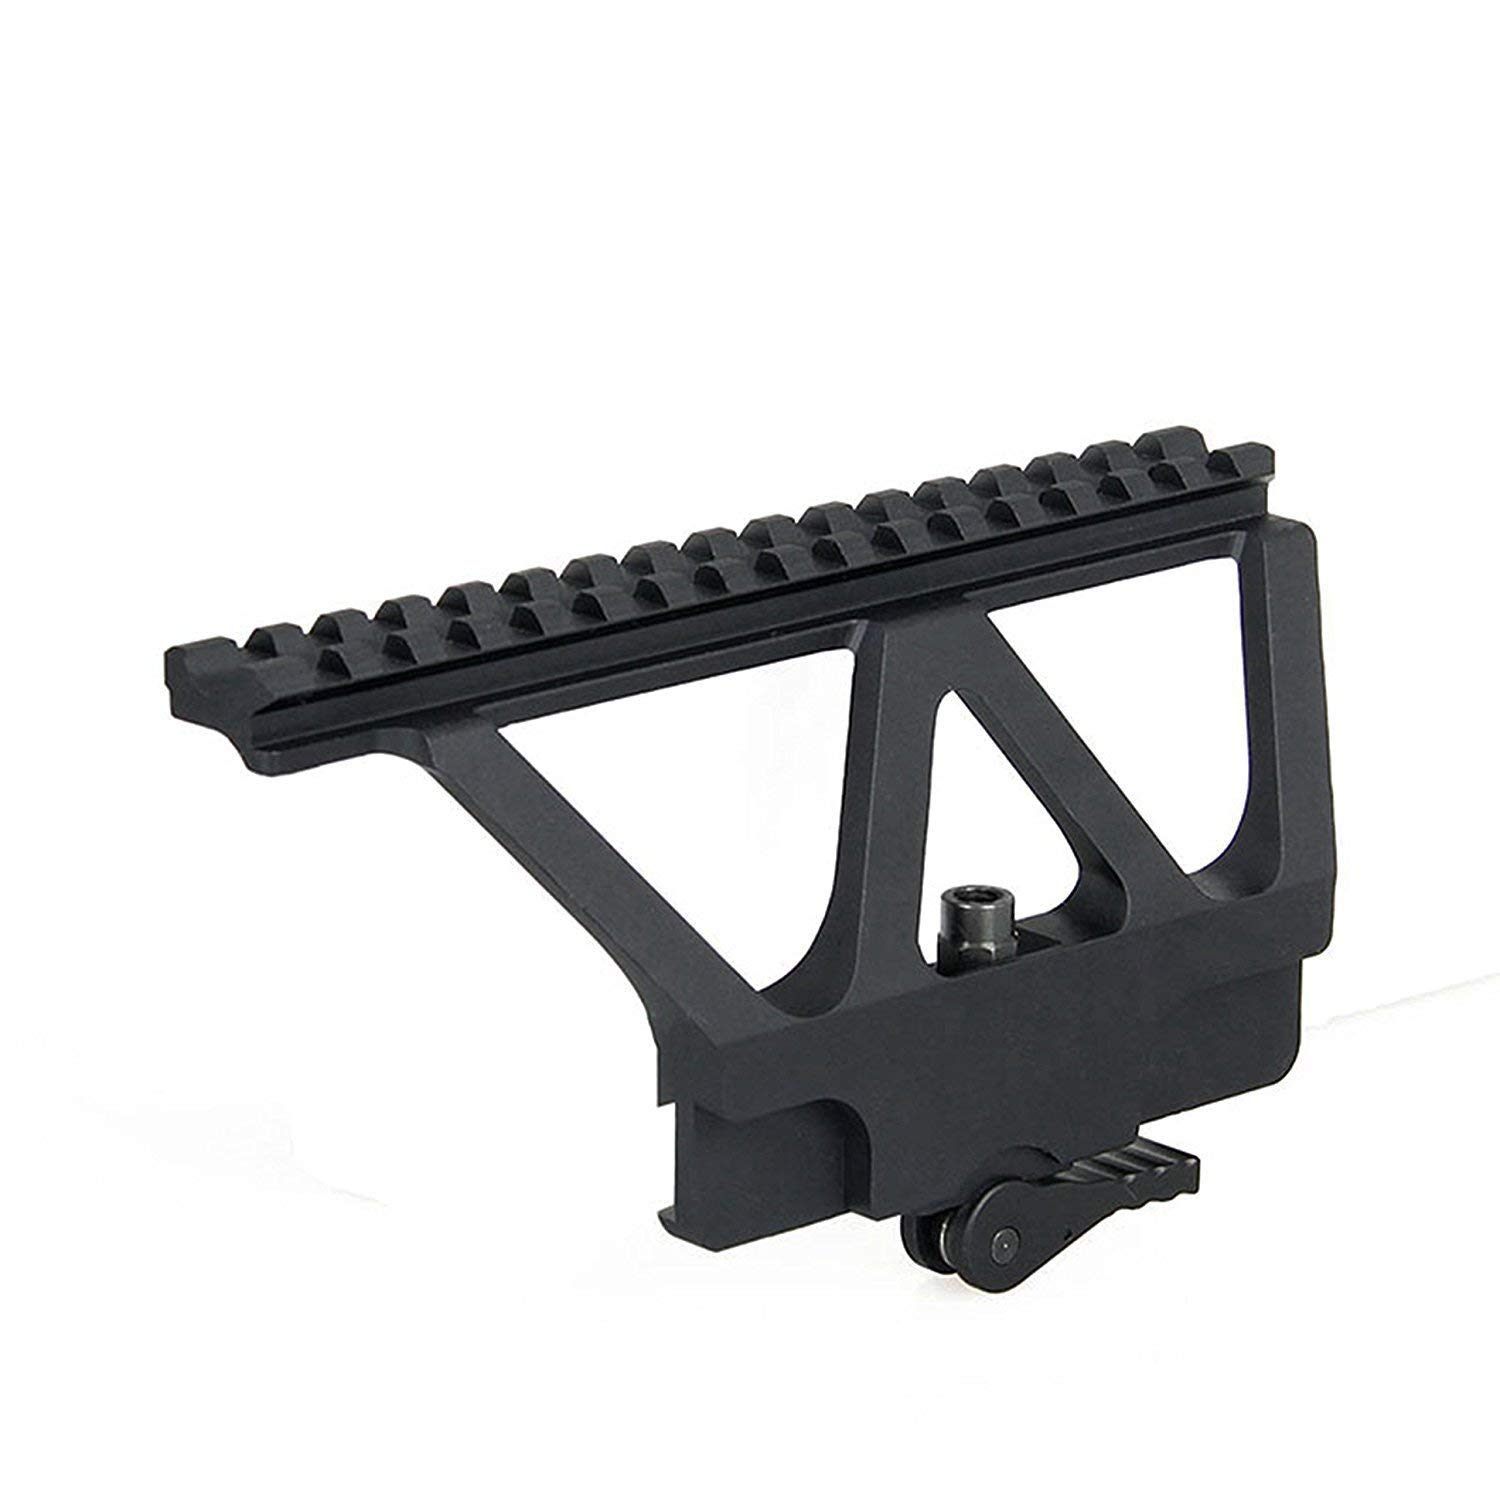 SEIGNEER Side Scope Rail Mount A-K Tipo Scope Mount Picatinny Weaver Black